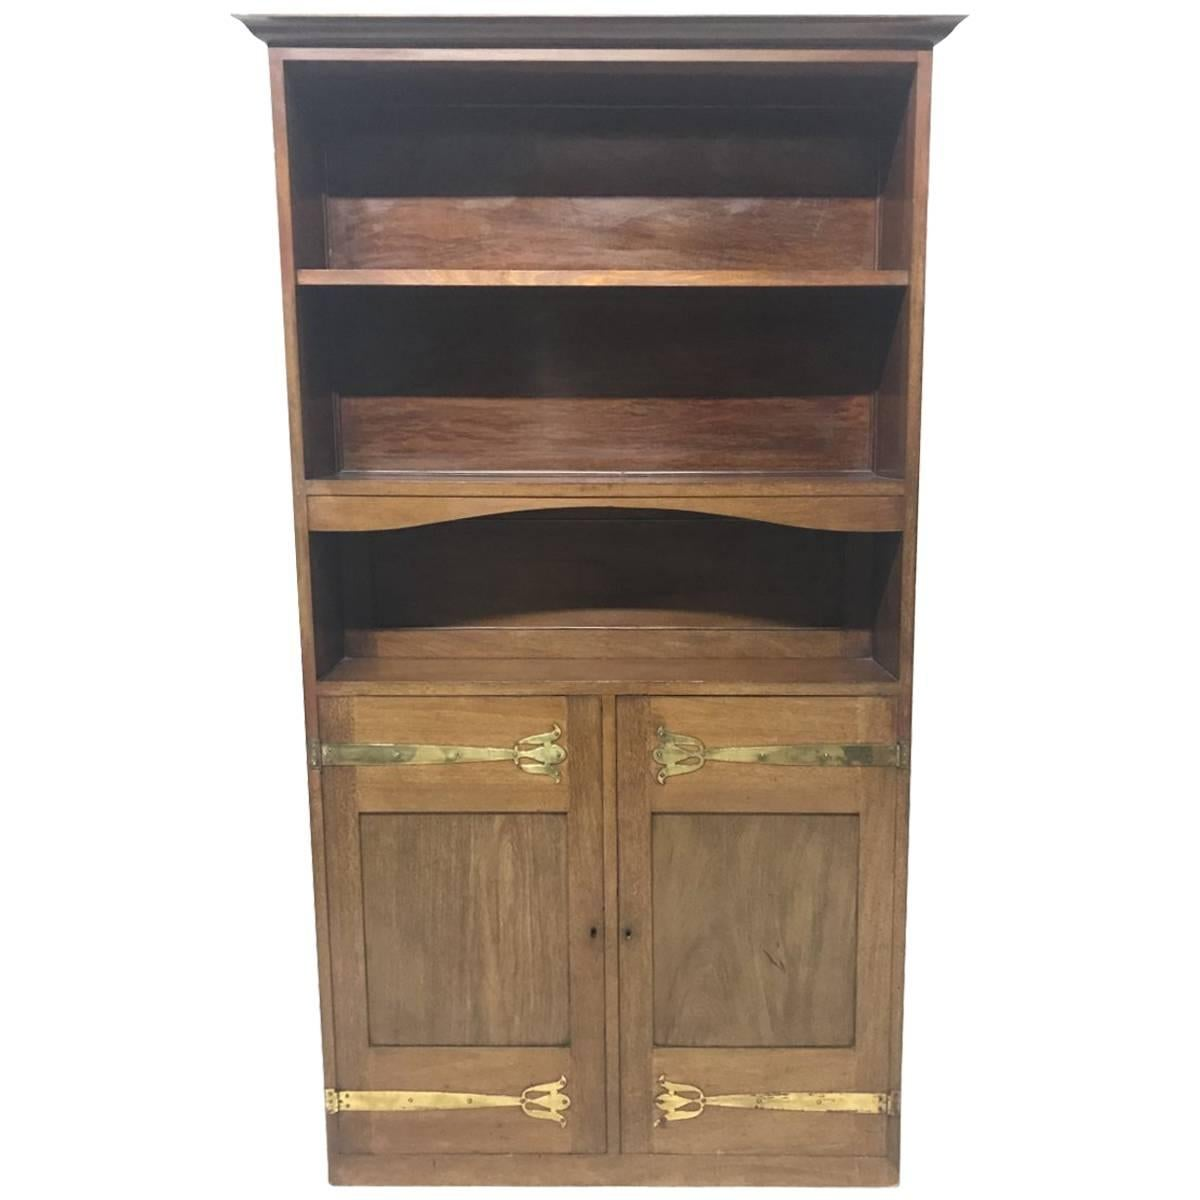 Liberty & Co. A Slim Arts & Crafts Walnut Bookcase with Stylised Copper Hinges